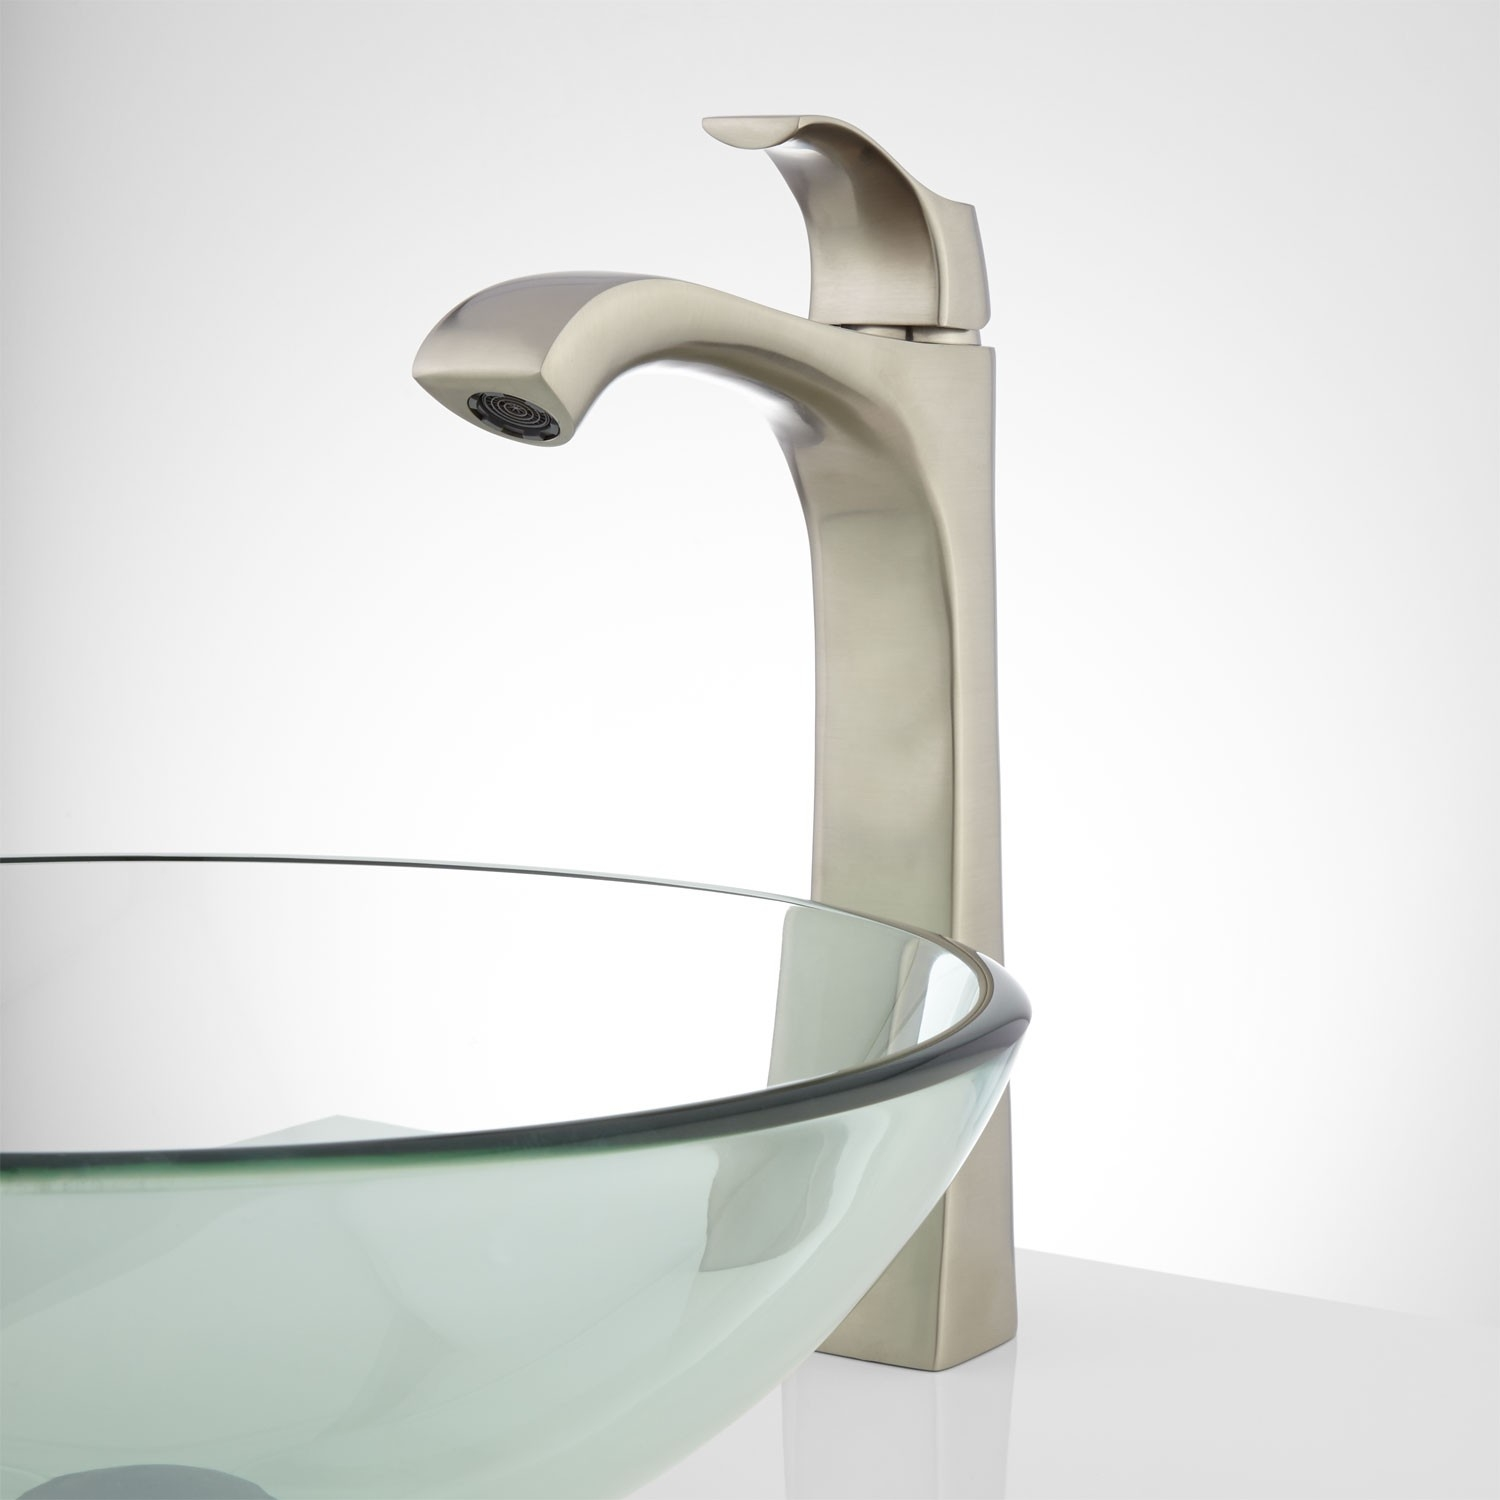 Ideas, clayton single hole vessel faucet single hole faucets bathroom intended for proportions 1500 x 1500  .